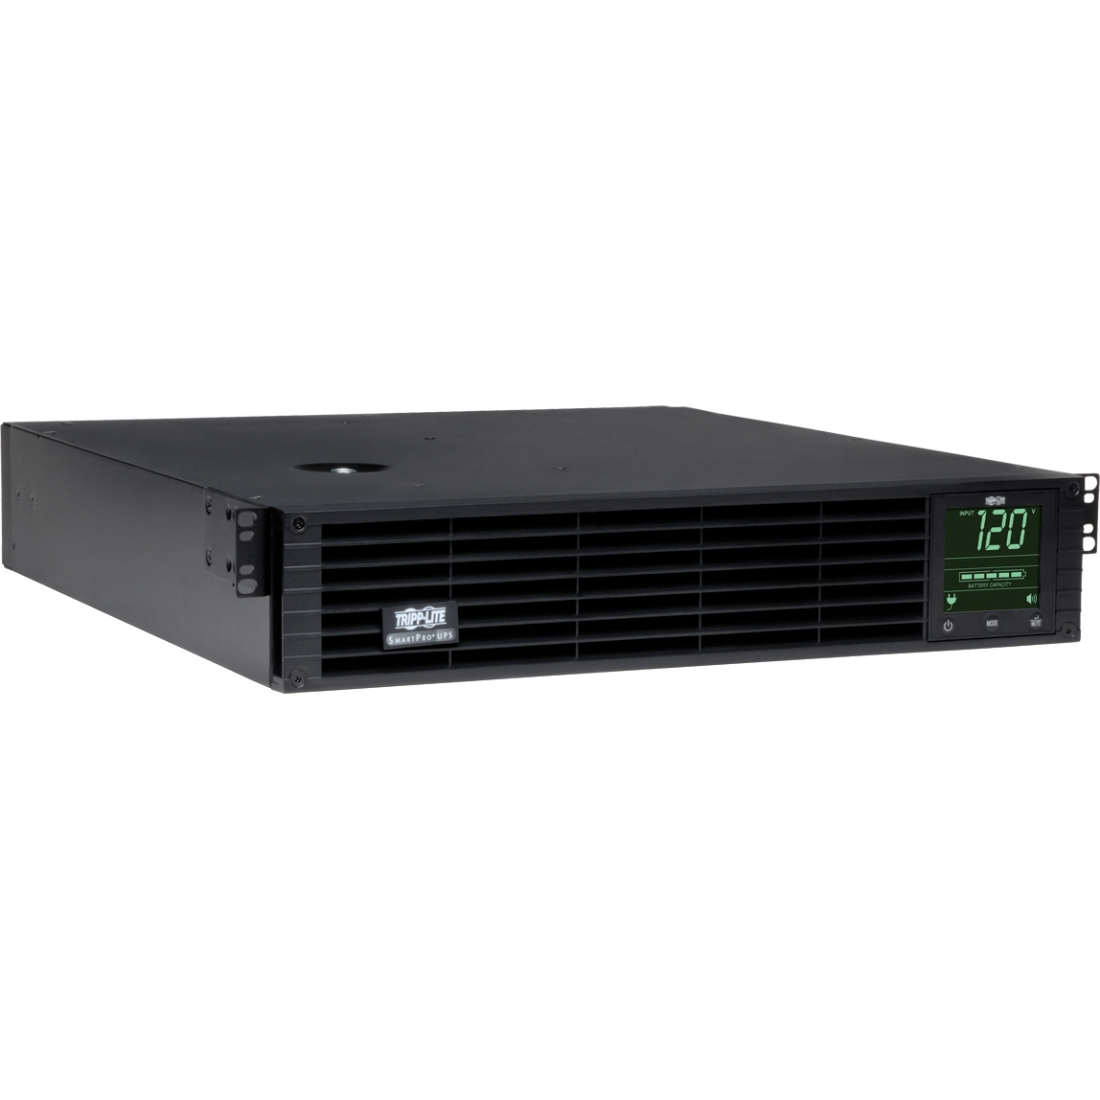 Tripp Lite Smartpro Smart2200rm2u 2200va Rack-mountable Ups 2200va 1920w 5 Minute Full Load 4 X Nema 5-15r, 4 X Nema... by Tripp Lite